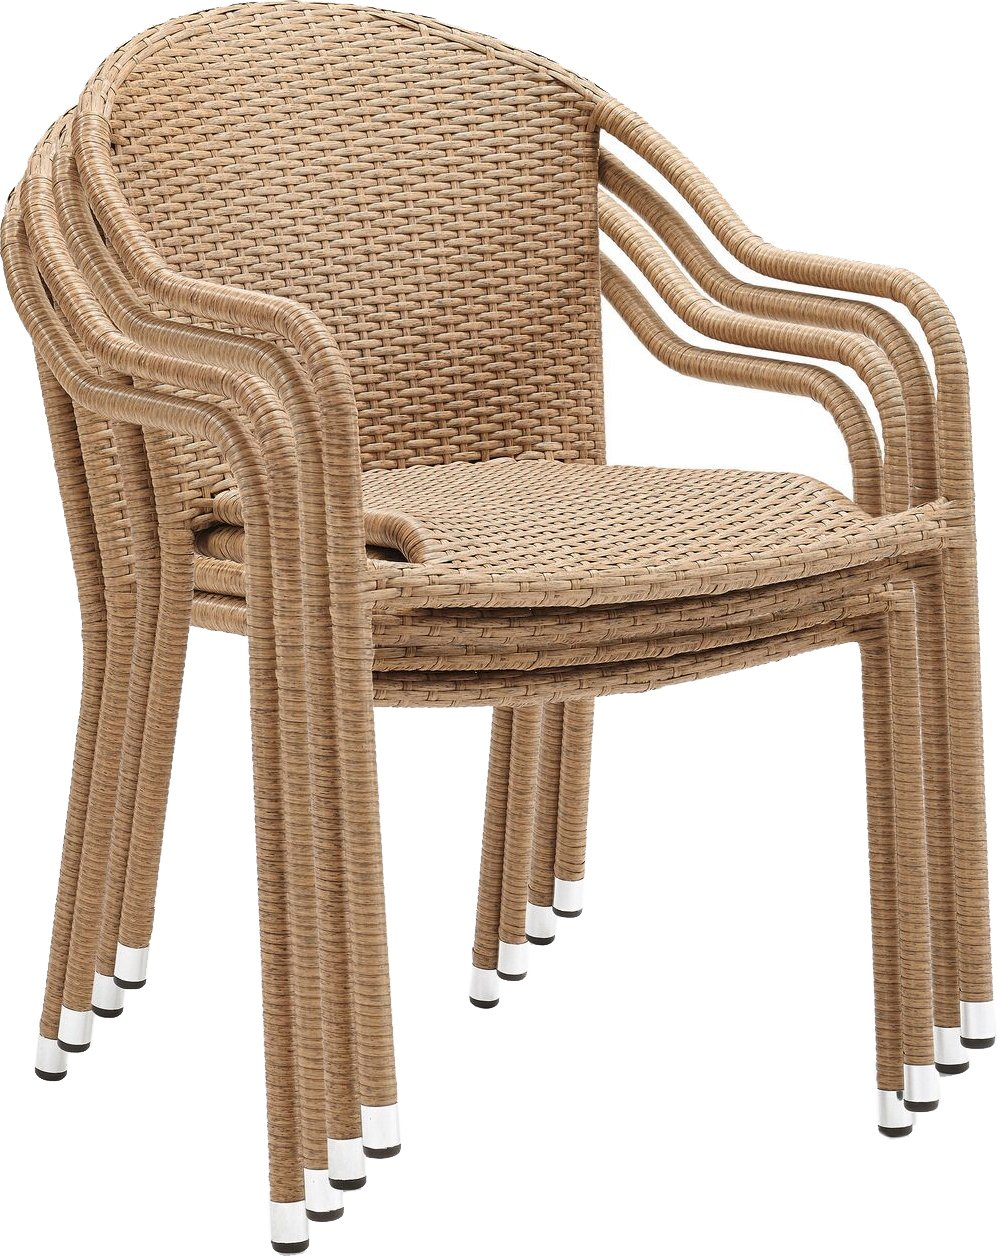 Crosley Furniture Palm Harbor Outdoor Wicker Stackable Chairs - Light Brown (Set of 4) by Crosley Furniture